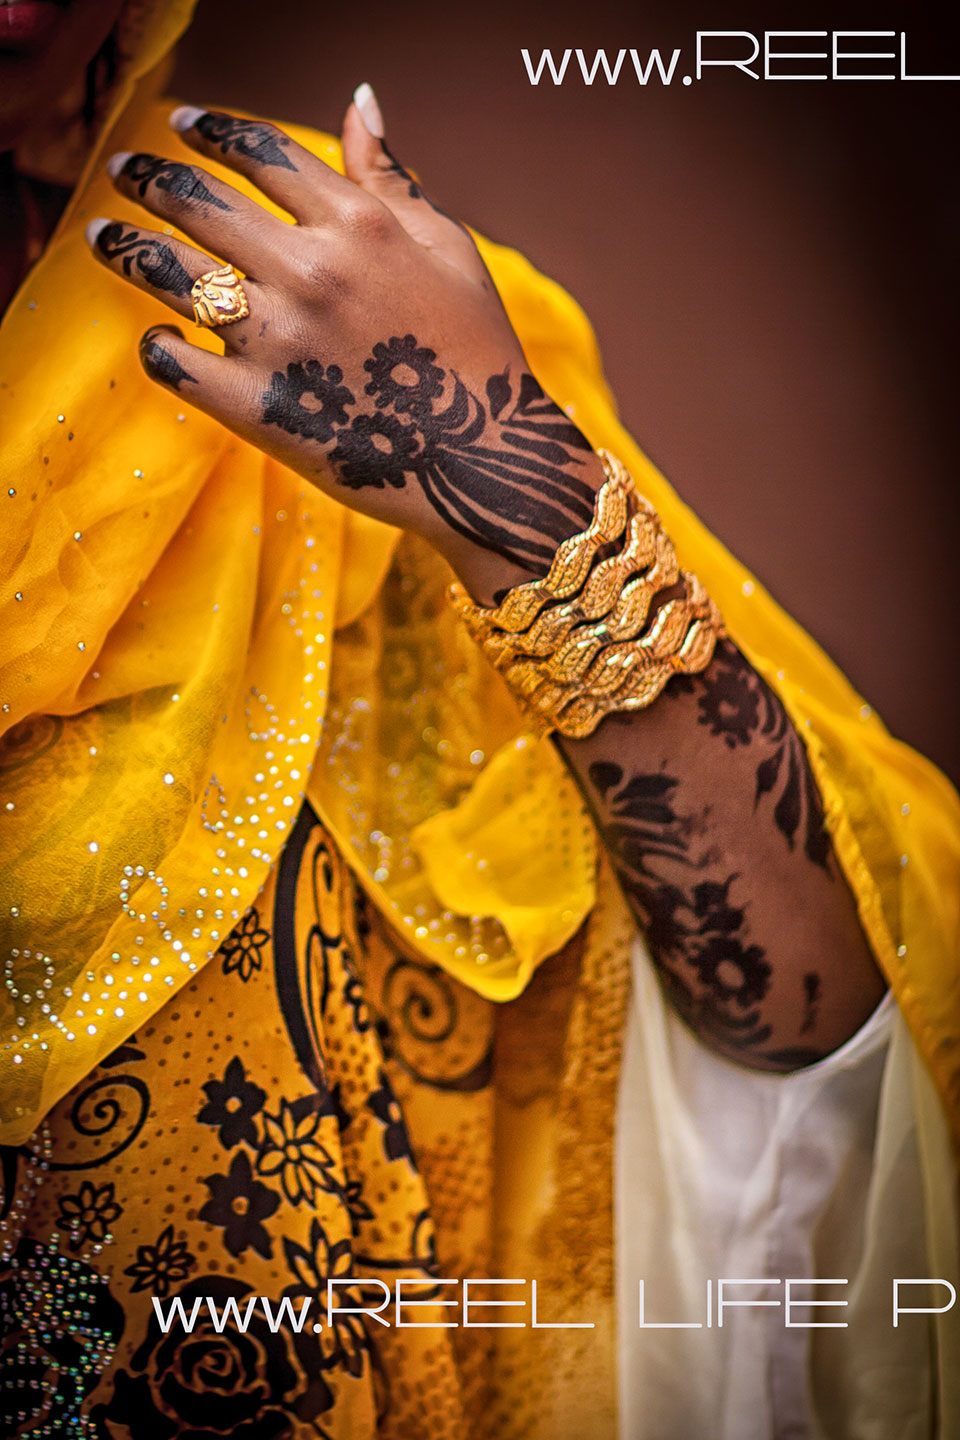 Reellifephotos Wedding Photography 187 Somali Wedding Photography